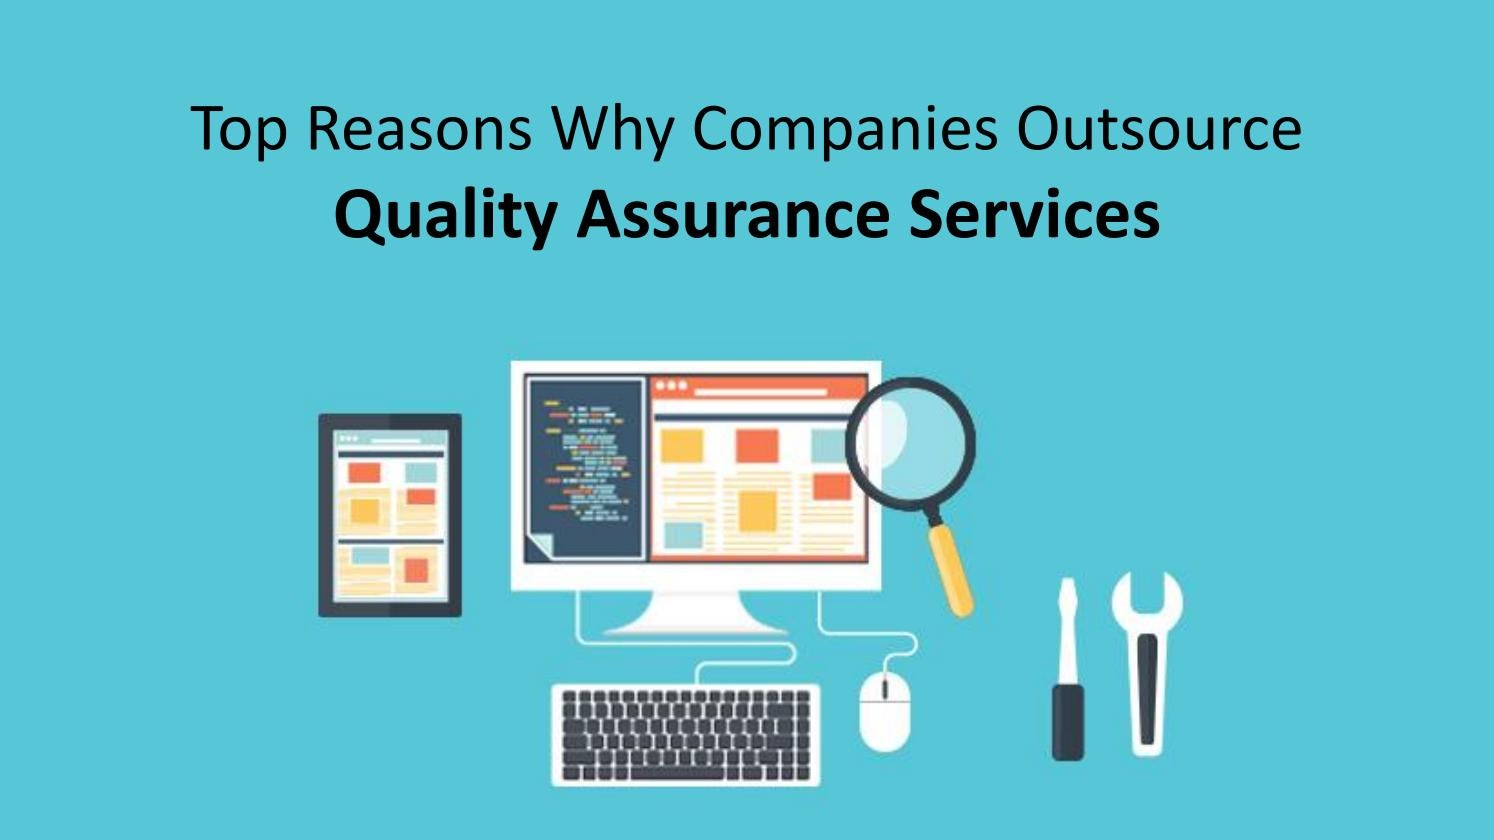 Top reasons why companies outsource quality assurance services